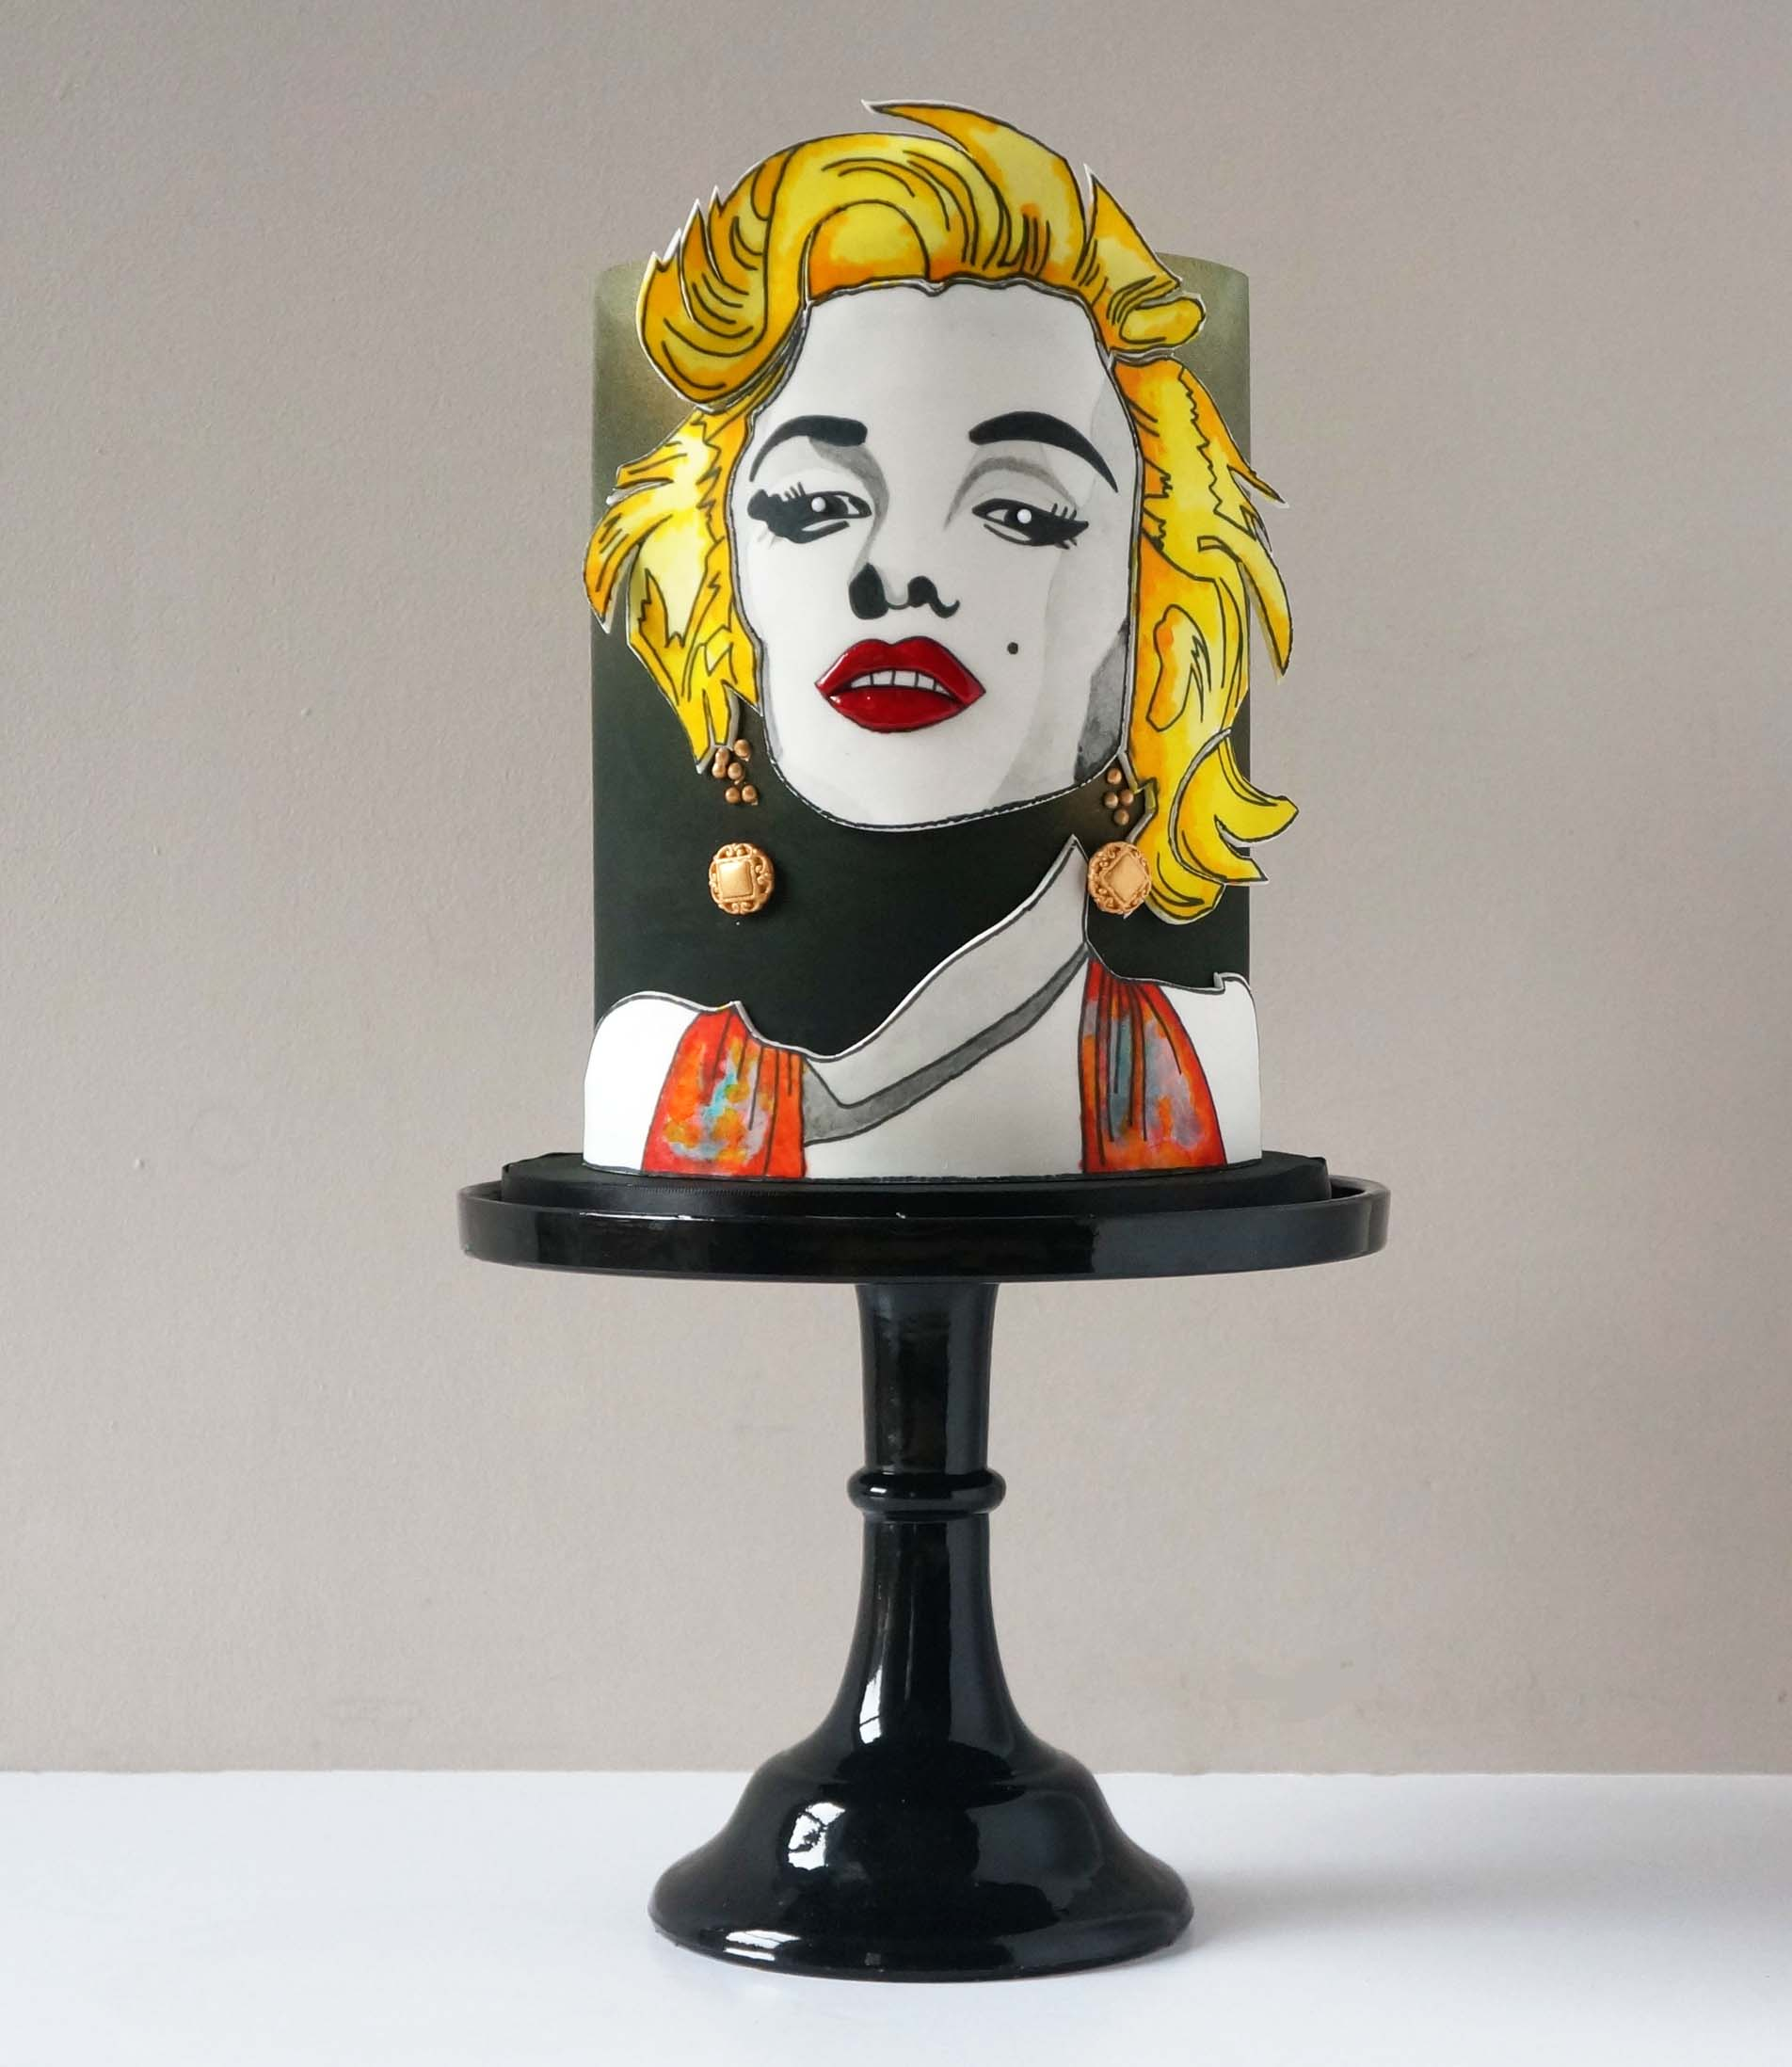 Hand painted Pop Art Marilyn Monroe cake